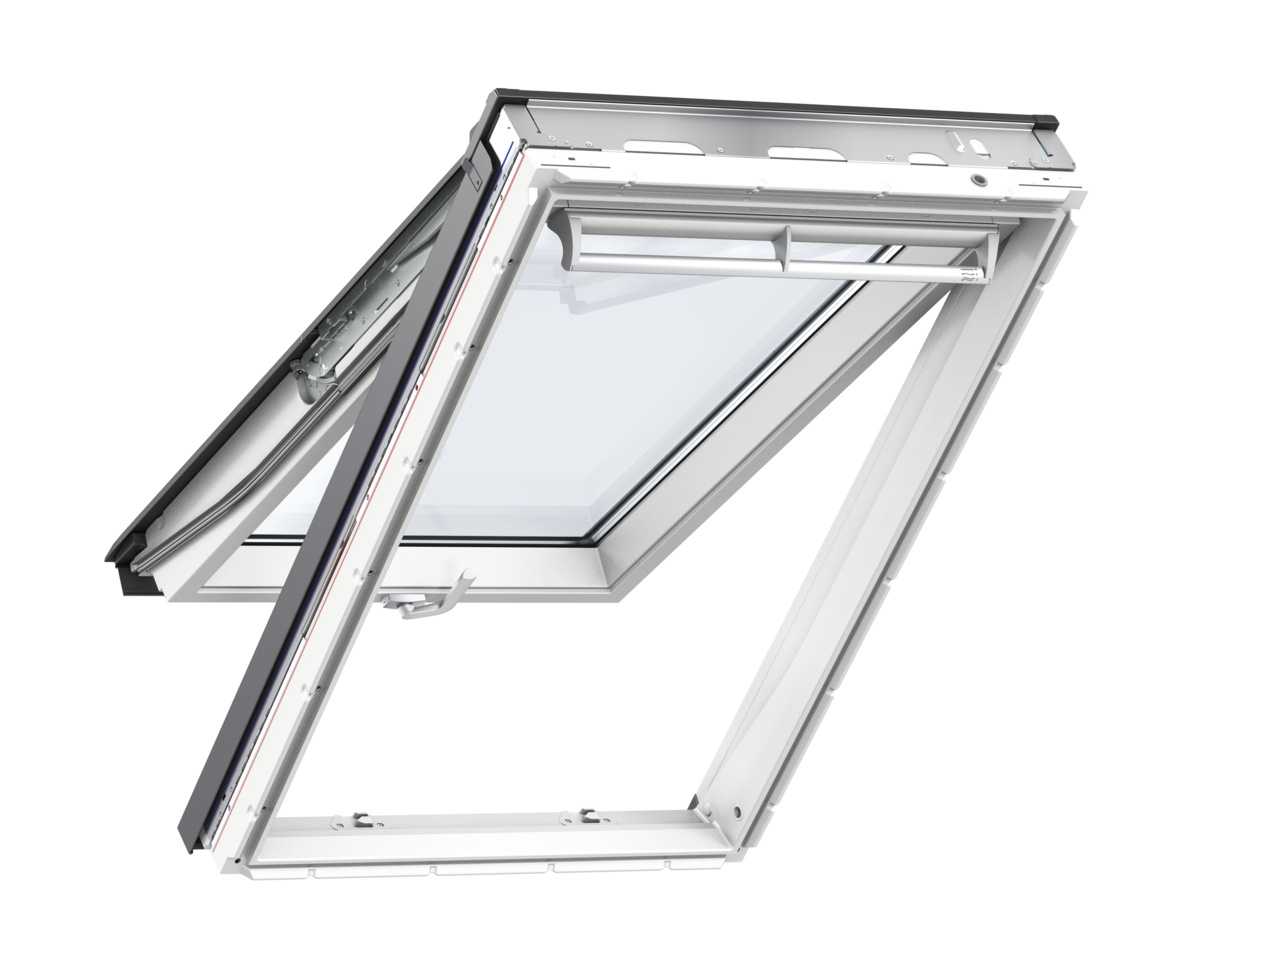 Velux GPU MK04 780 x 980mm Top Hung Standard 70Pane Roof Window - White Polyurethane